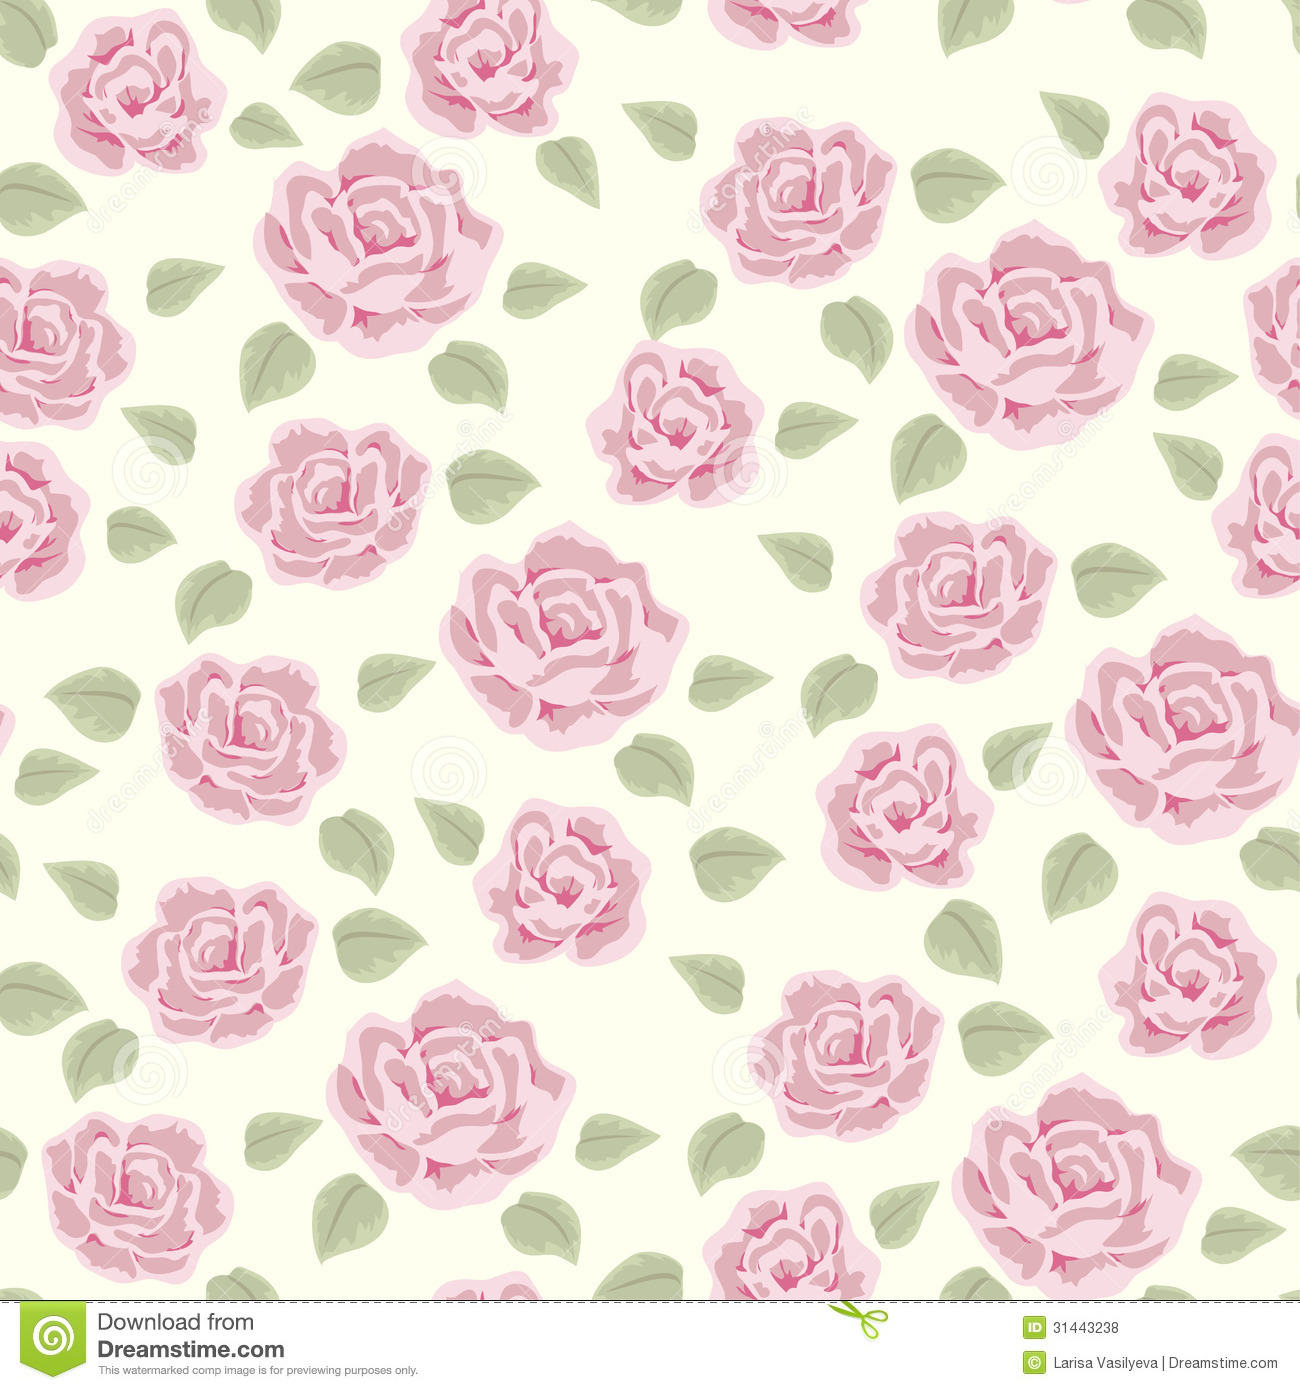 Free Shabby Chic Patterns Collection 16 Wallpapers